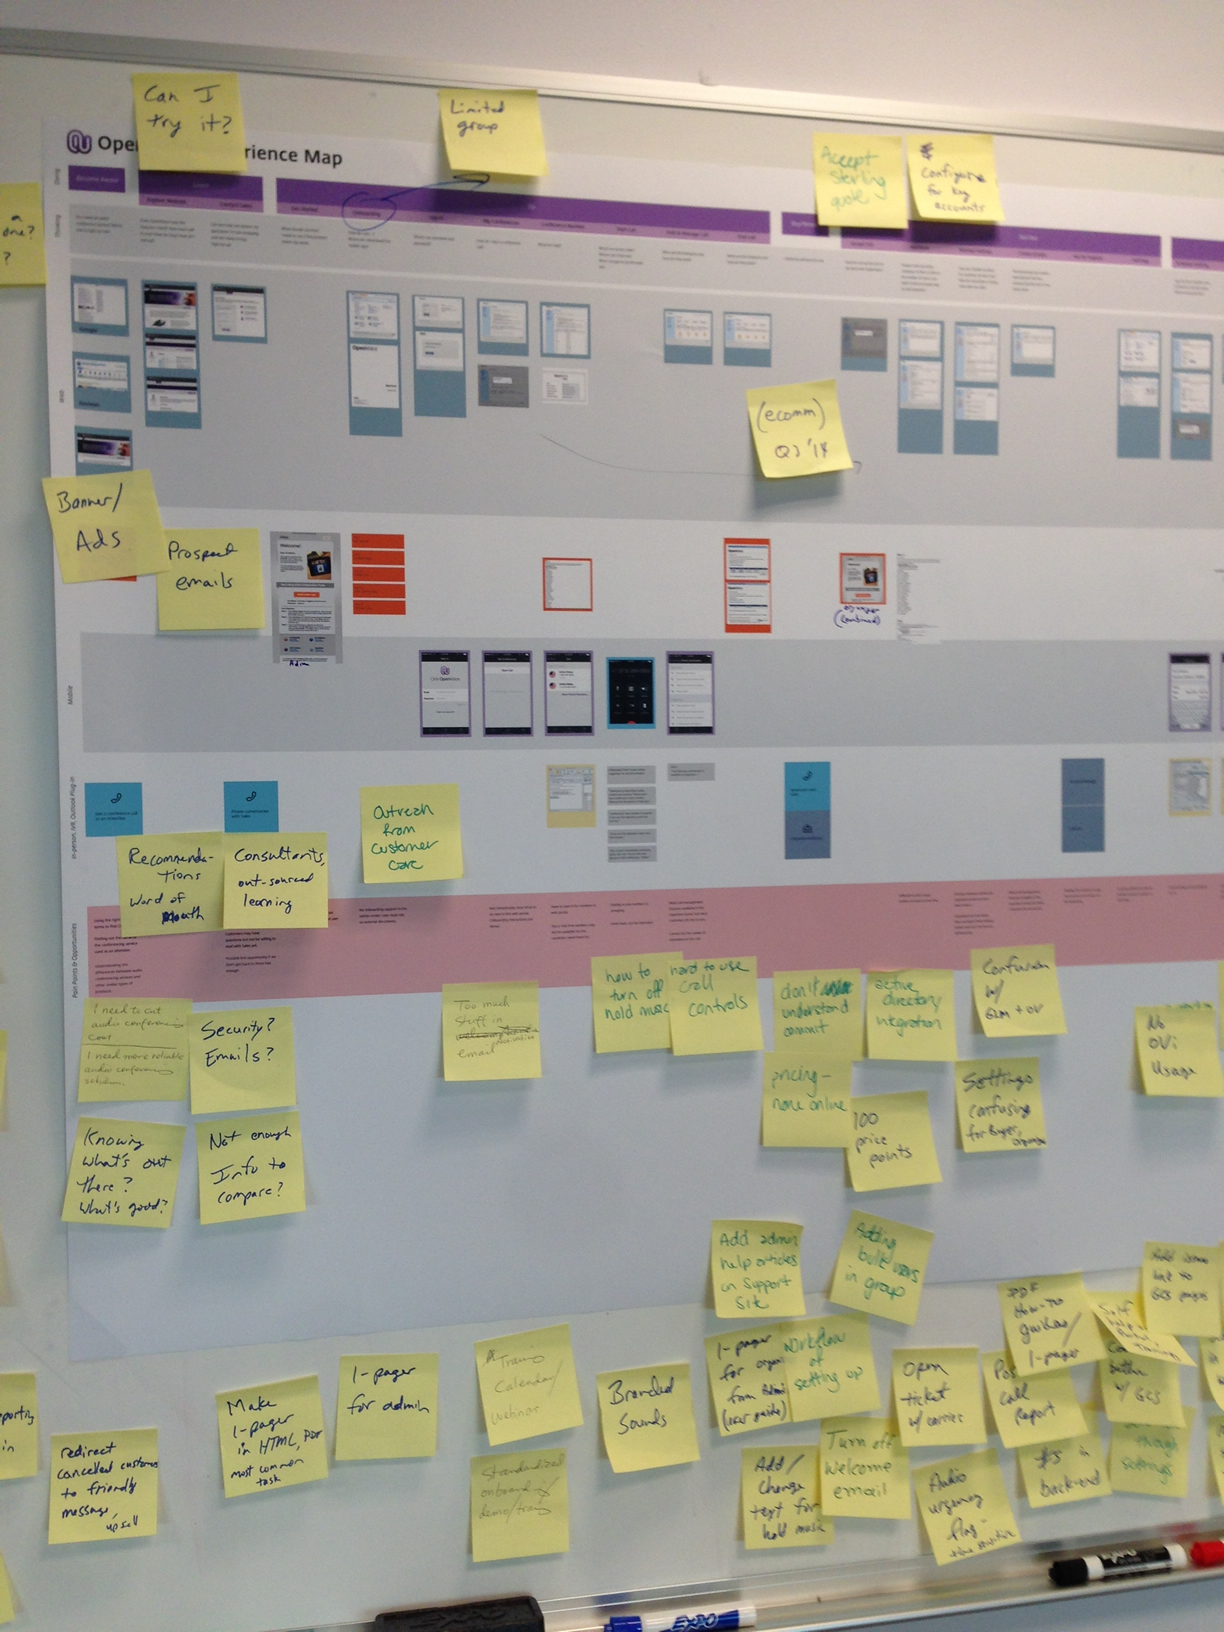 I made a draft map and the team walked the customer journey, adding steps, pain points, and opportunities.